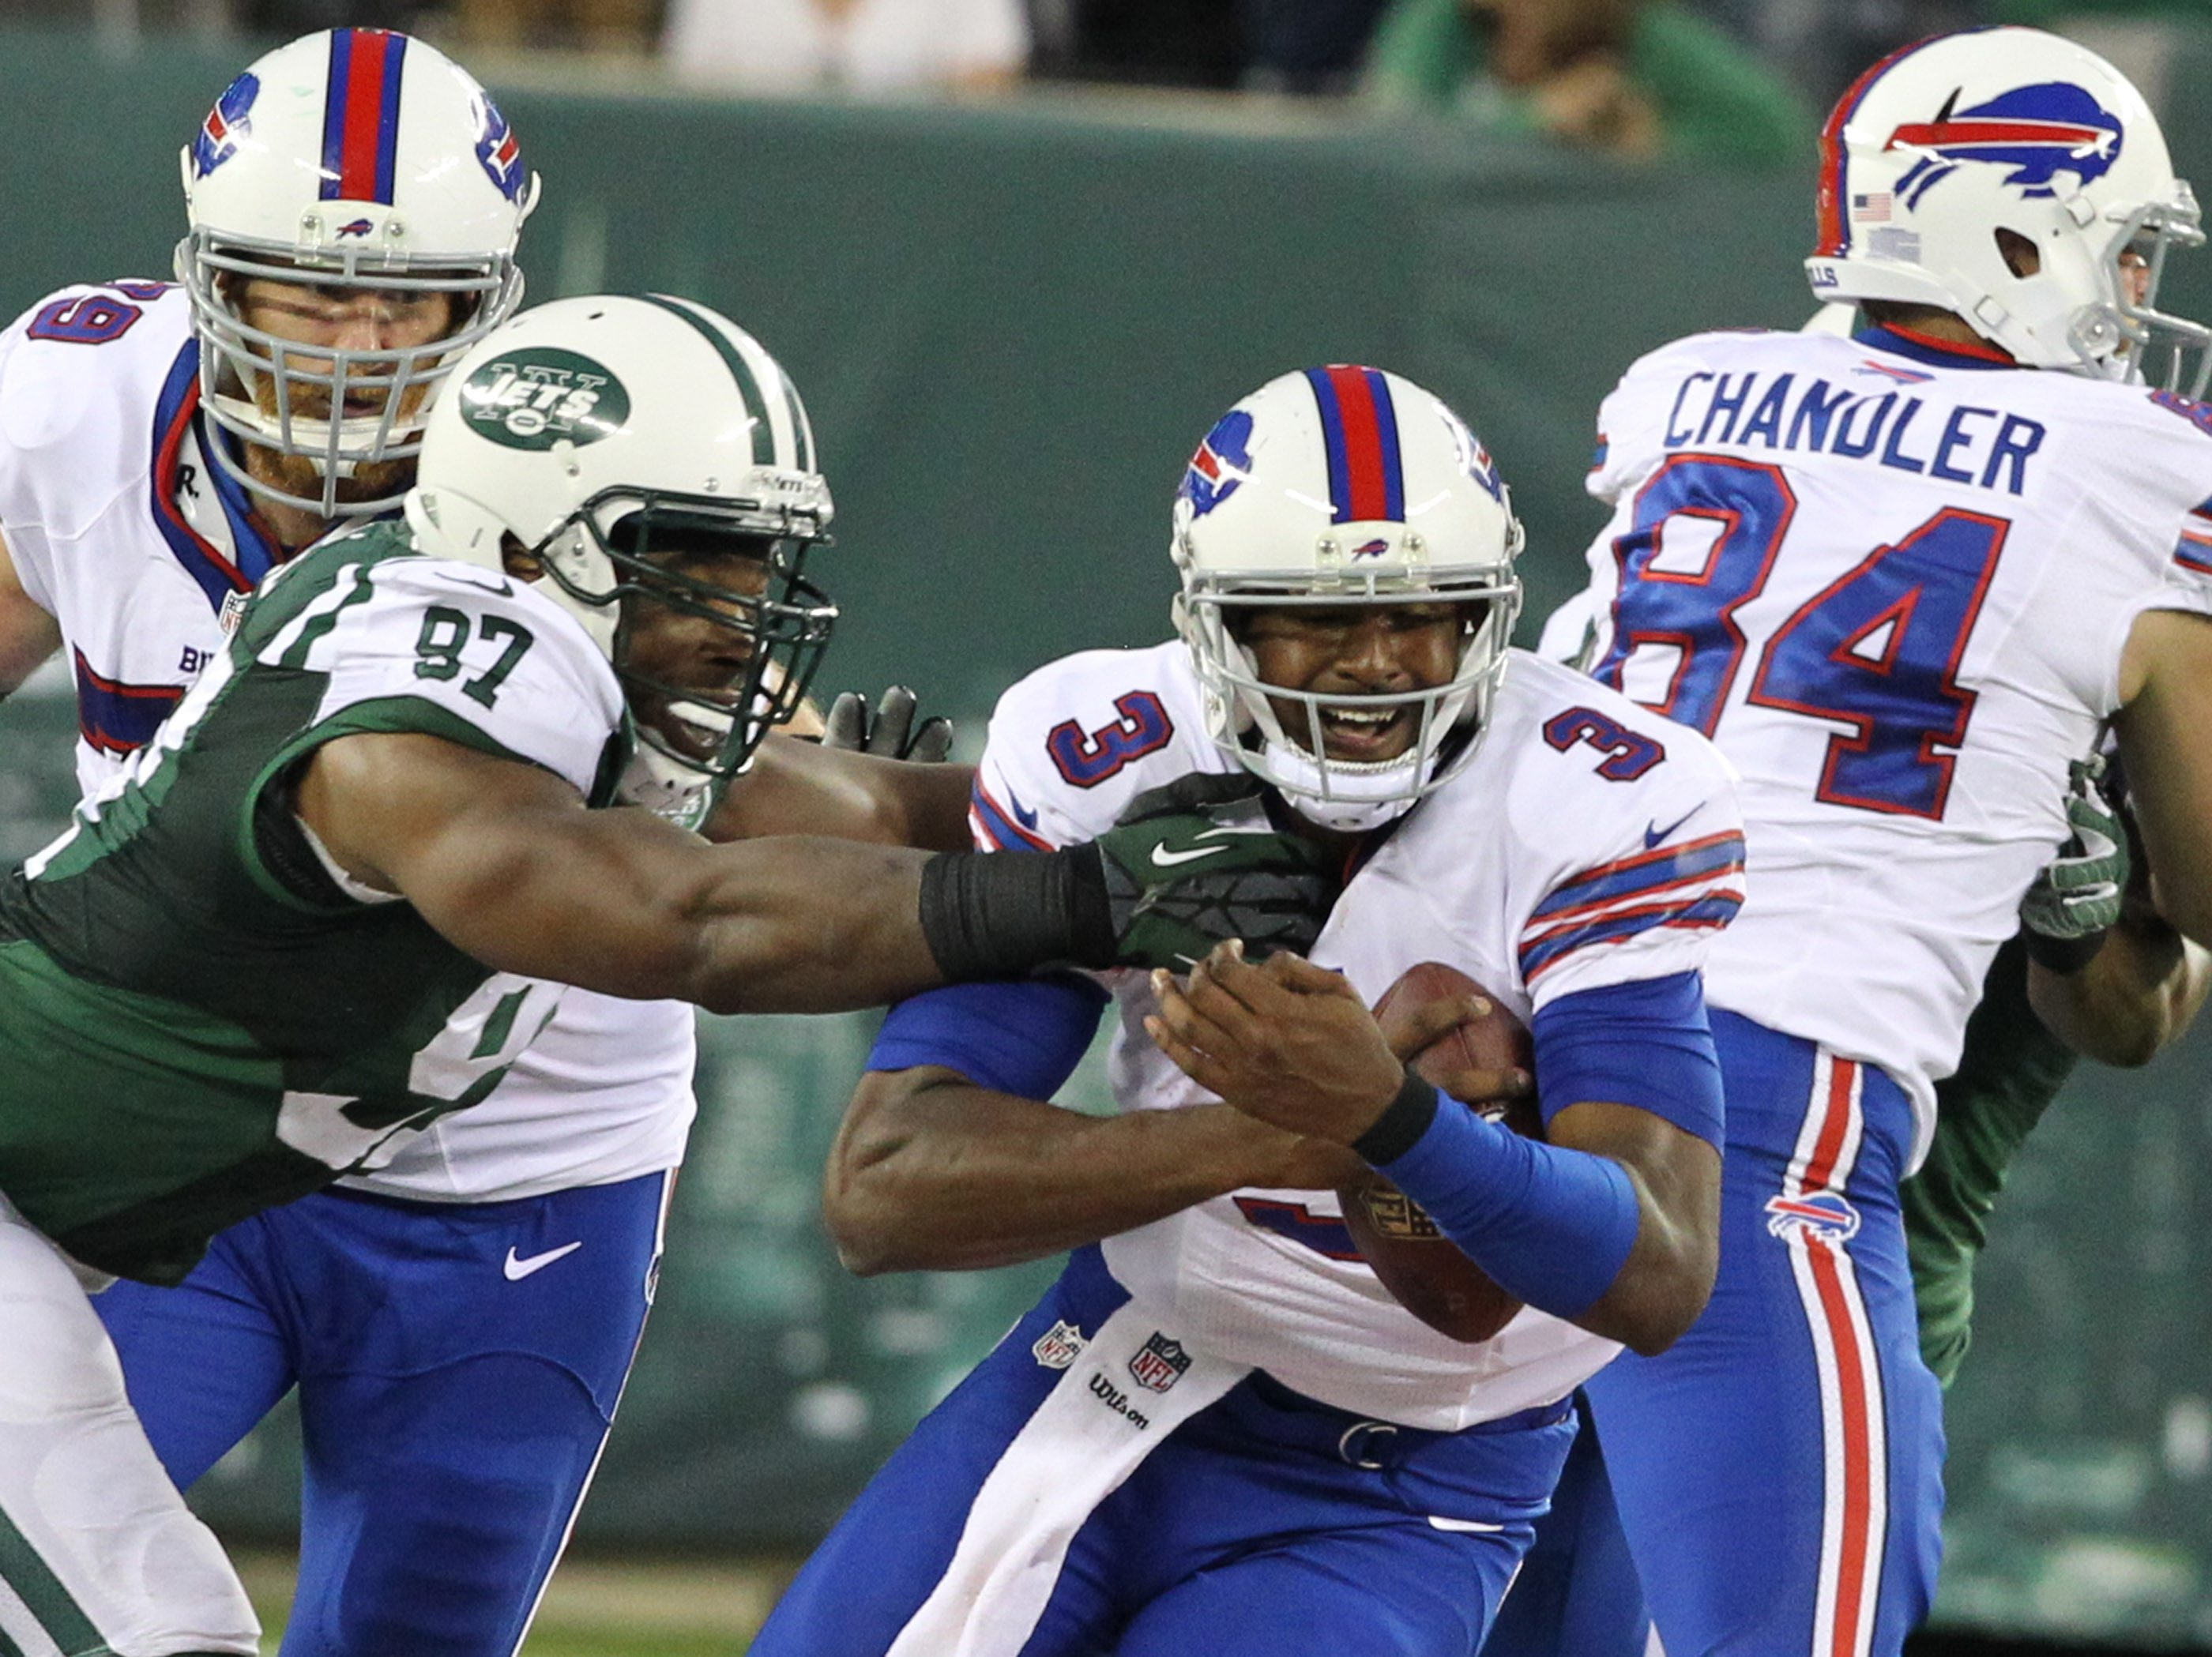 Buffalo Bills quarterback EJ Manuel dropped back a total of 50 times Sunday, attempting 42 passes while getting sacked eight times.